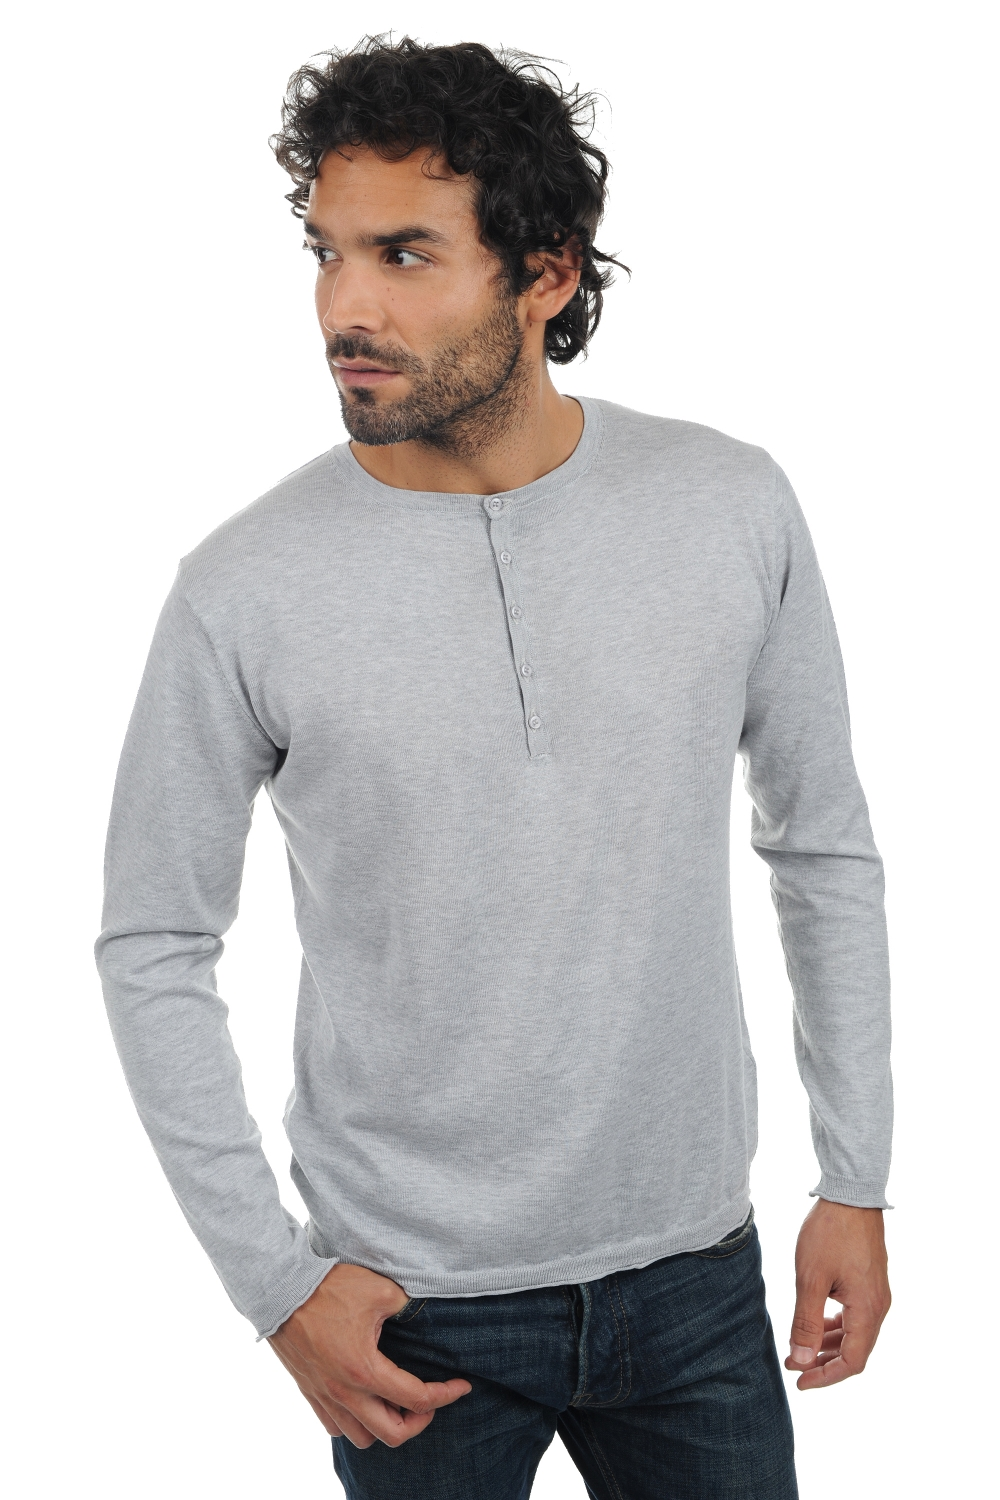 Coton Giza 45 pull homme col rond sergio flanelle xs